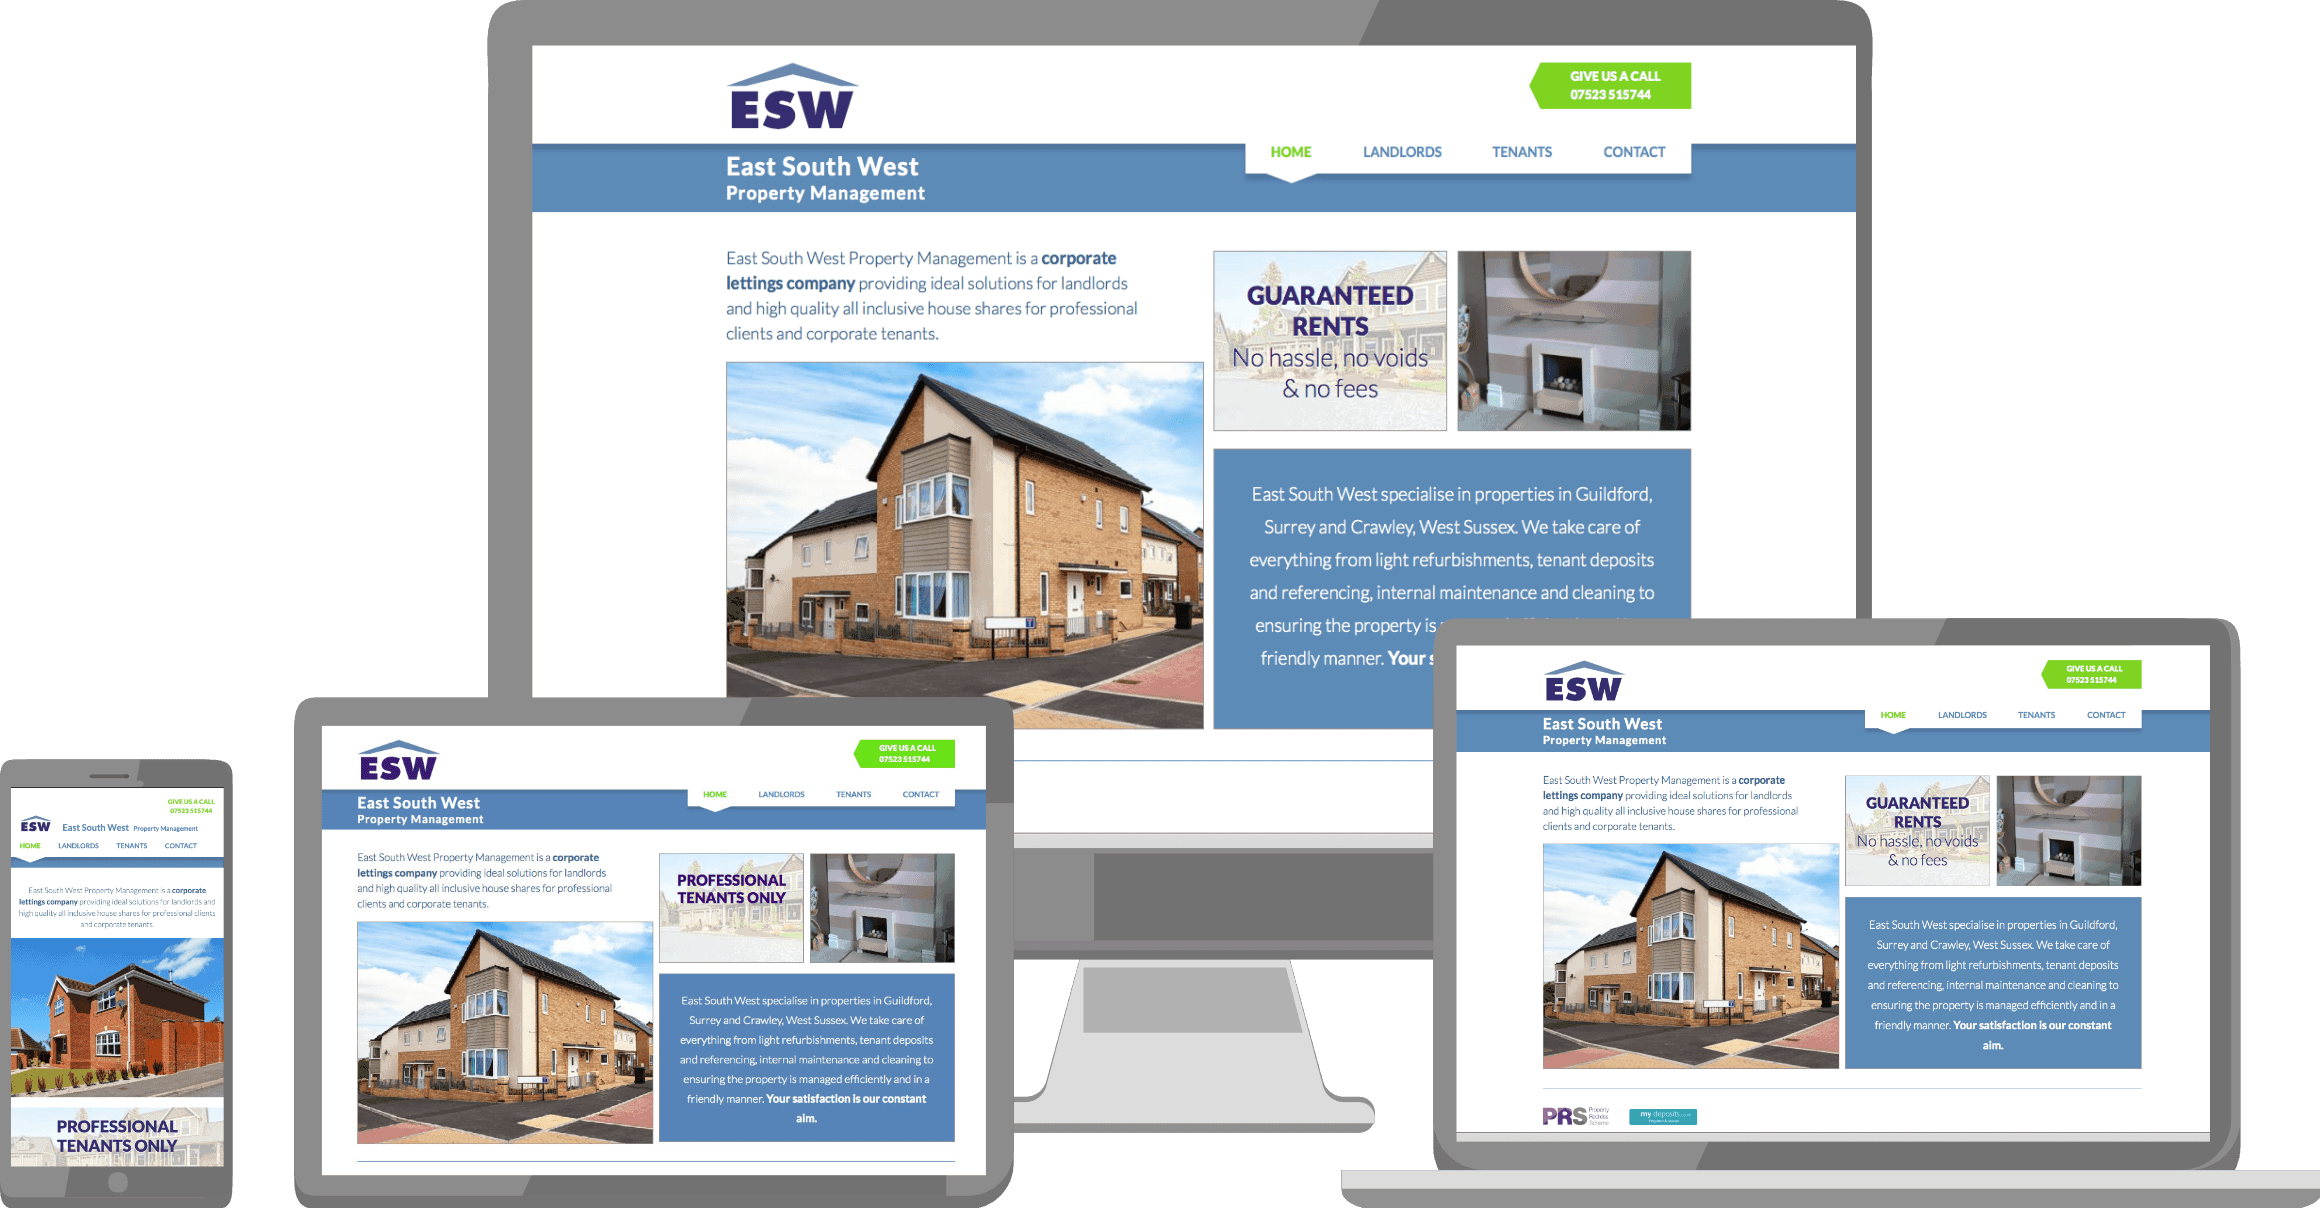 Image of East South West Property Management website design on a variety of devices